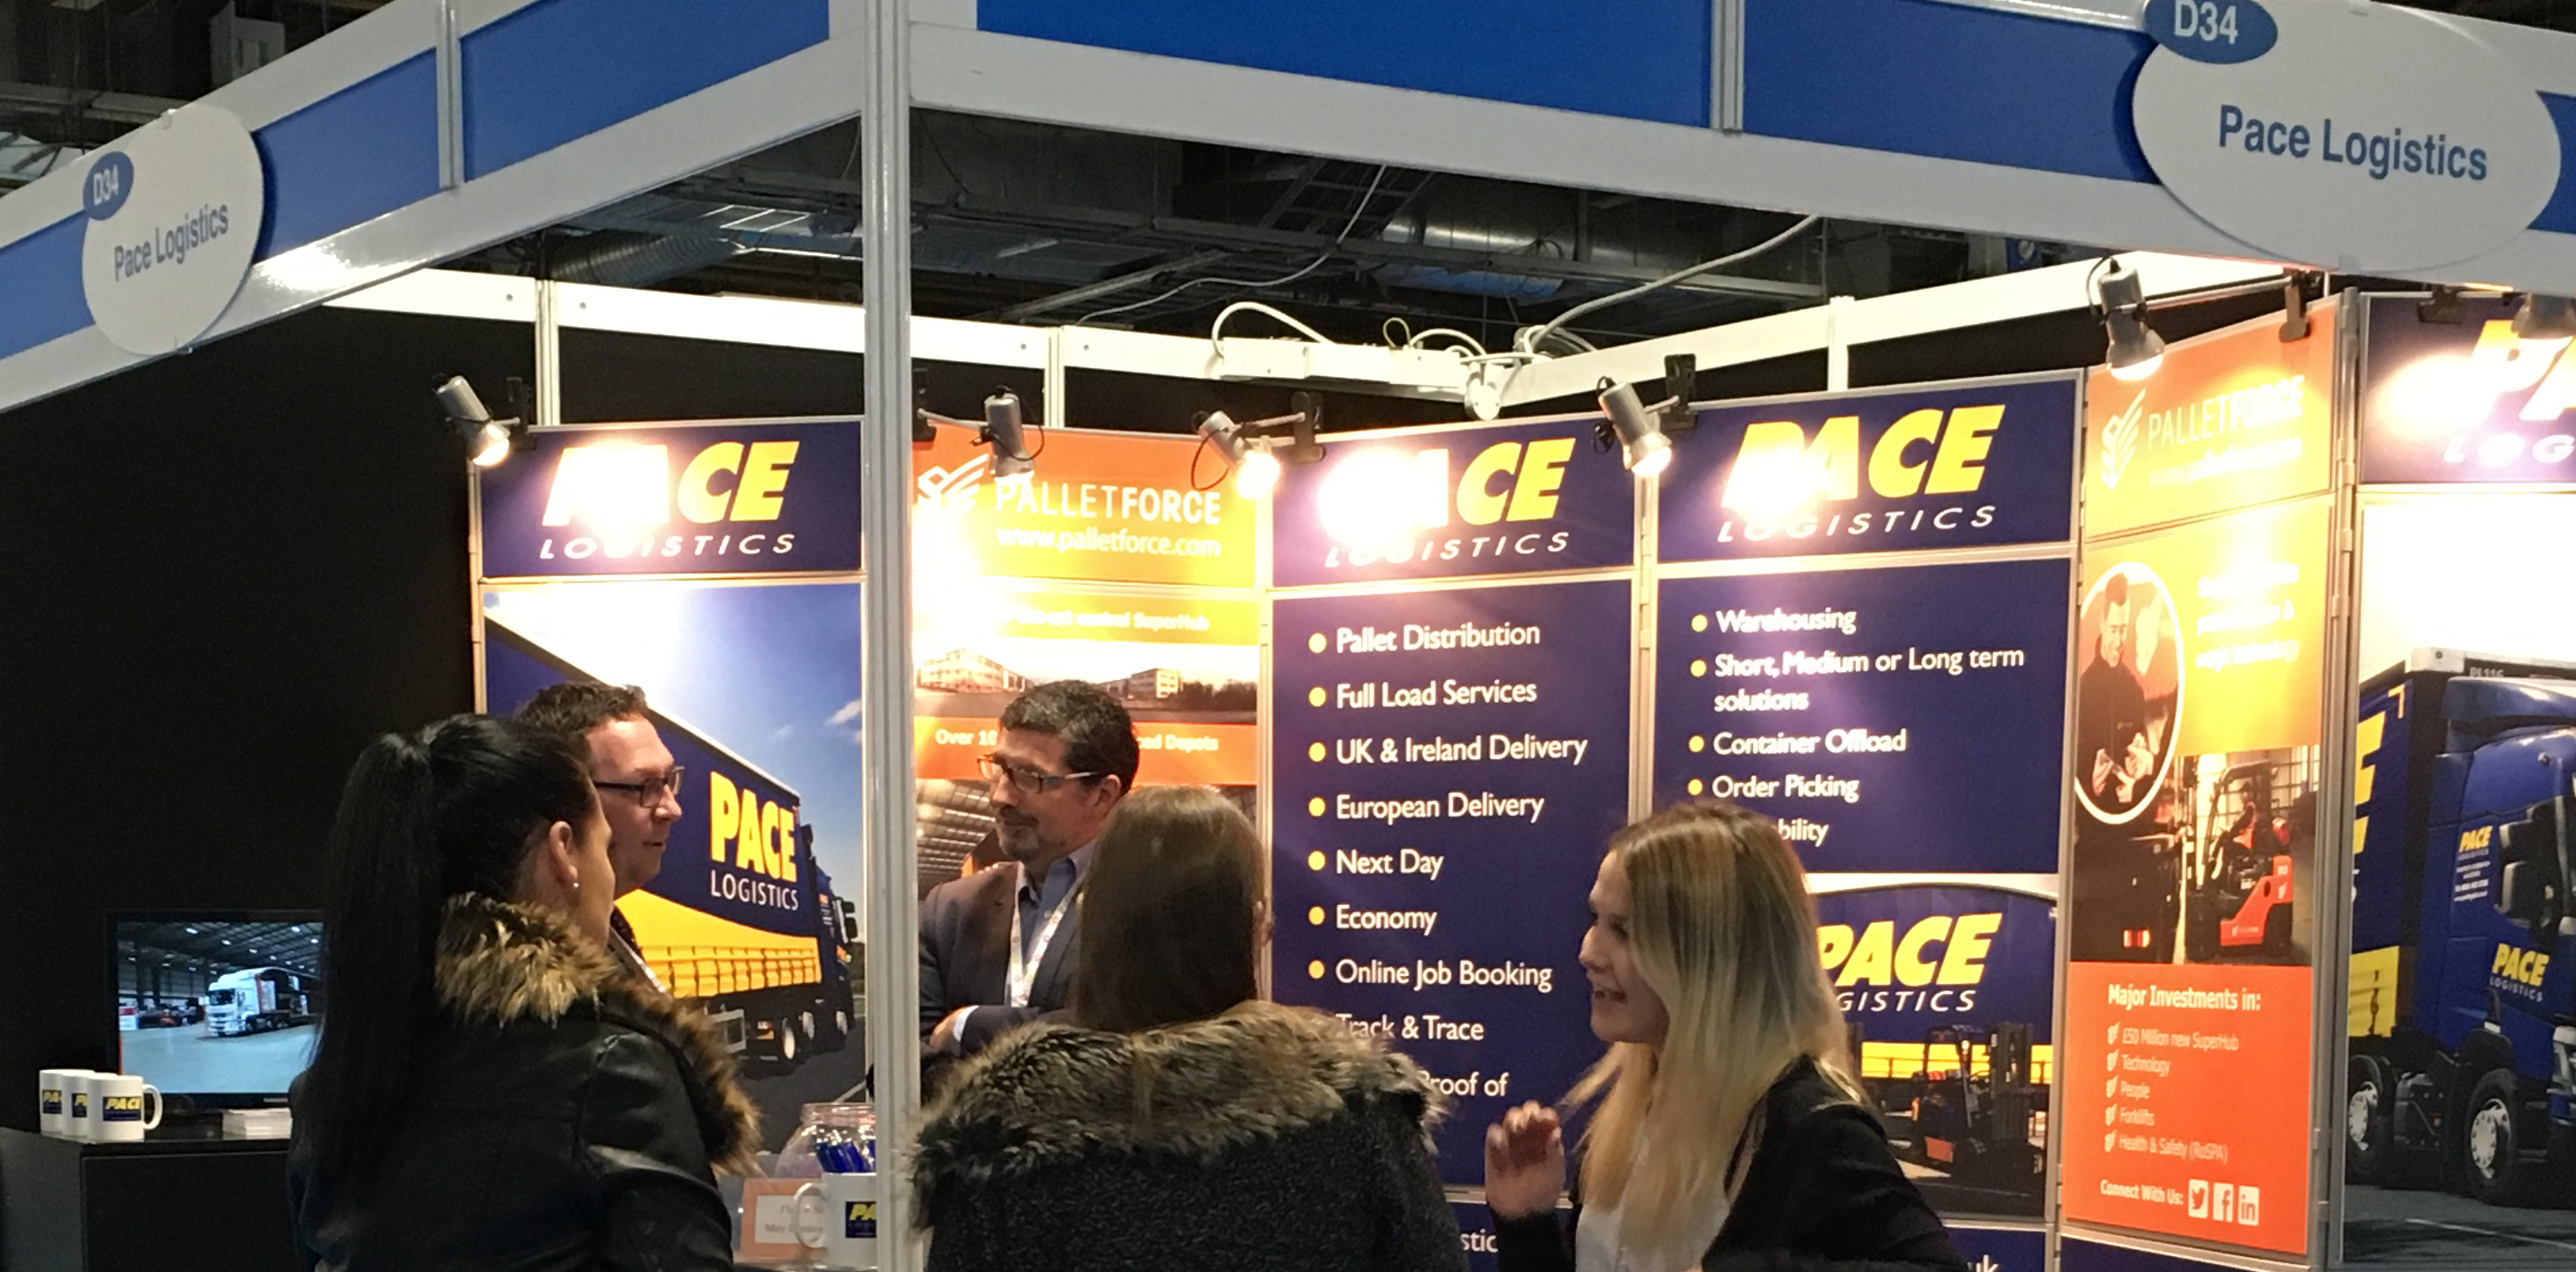 Visitors discussing logistics and pallet delivery at Manchester exhibition